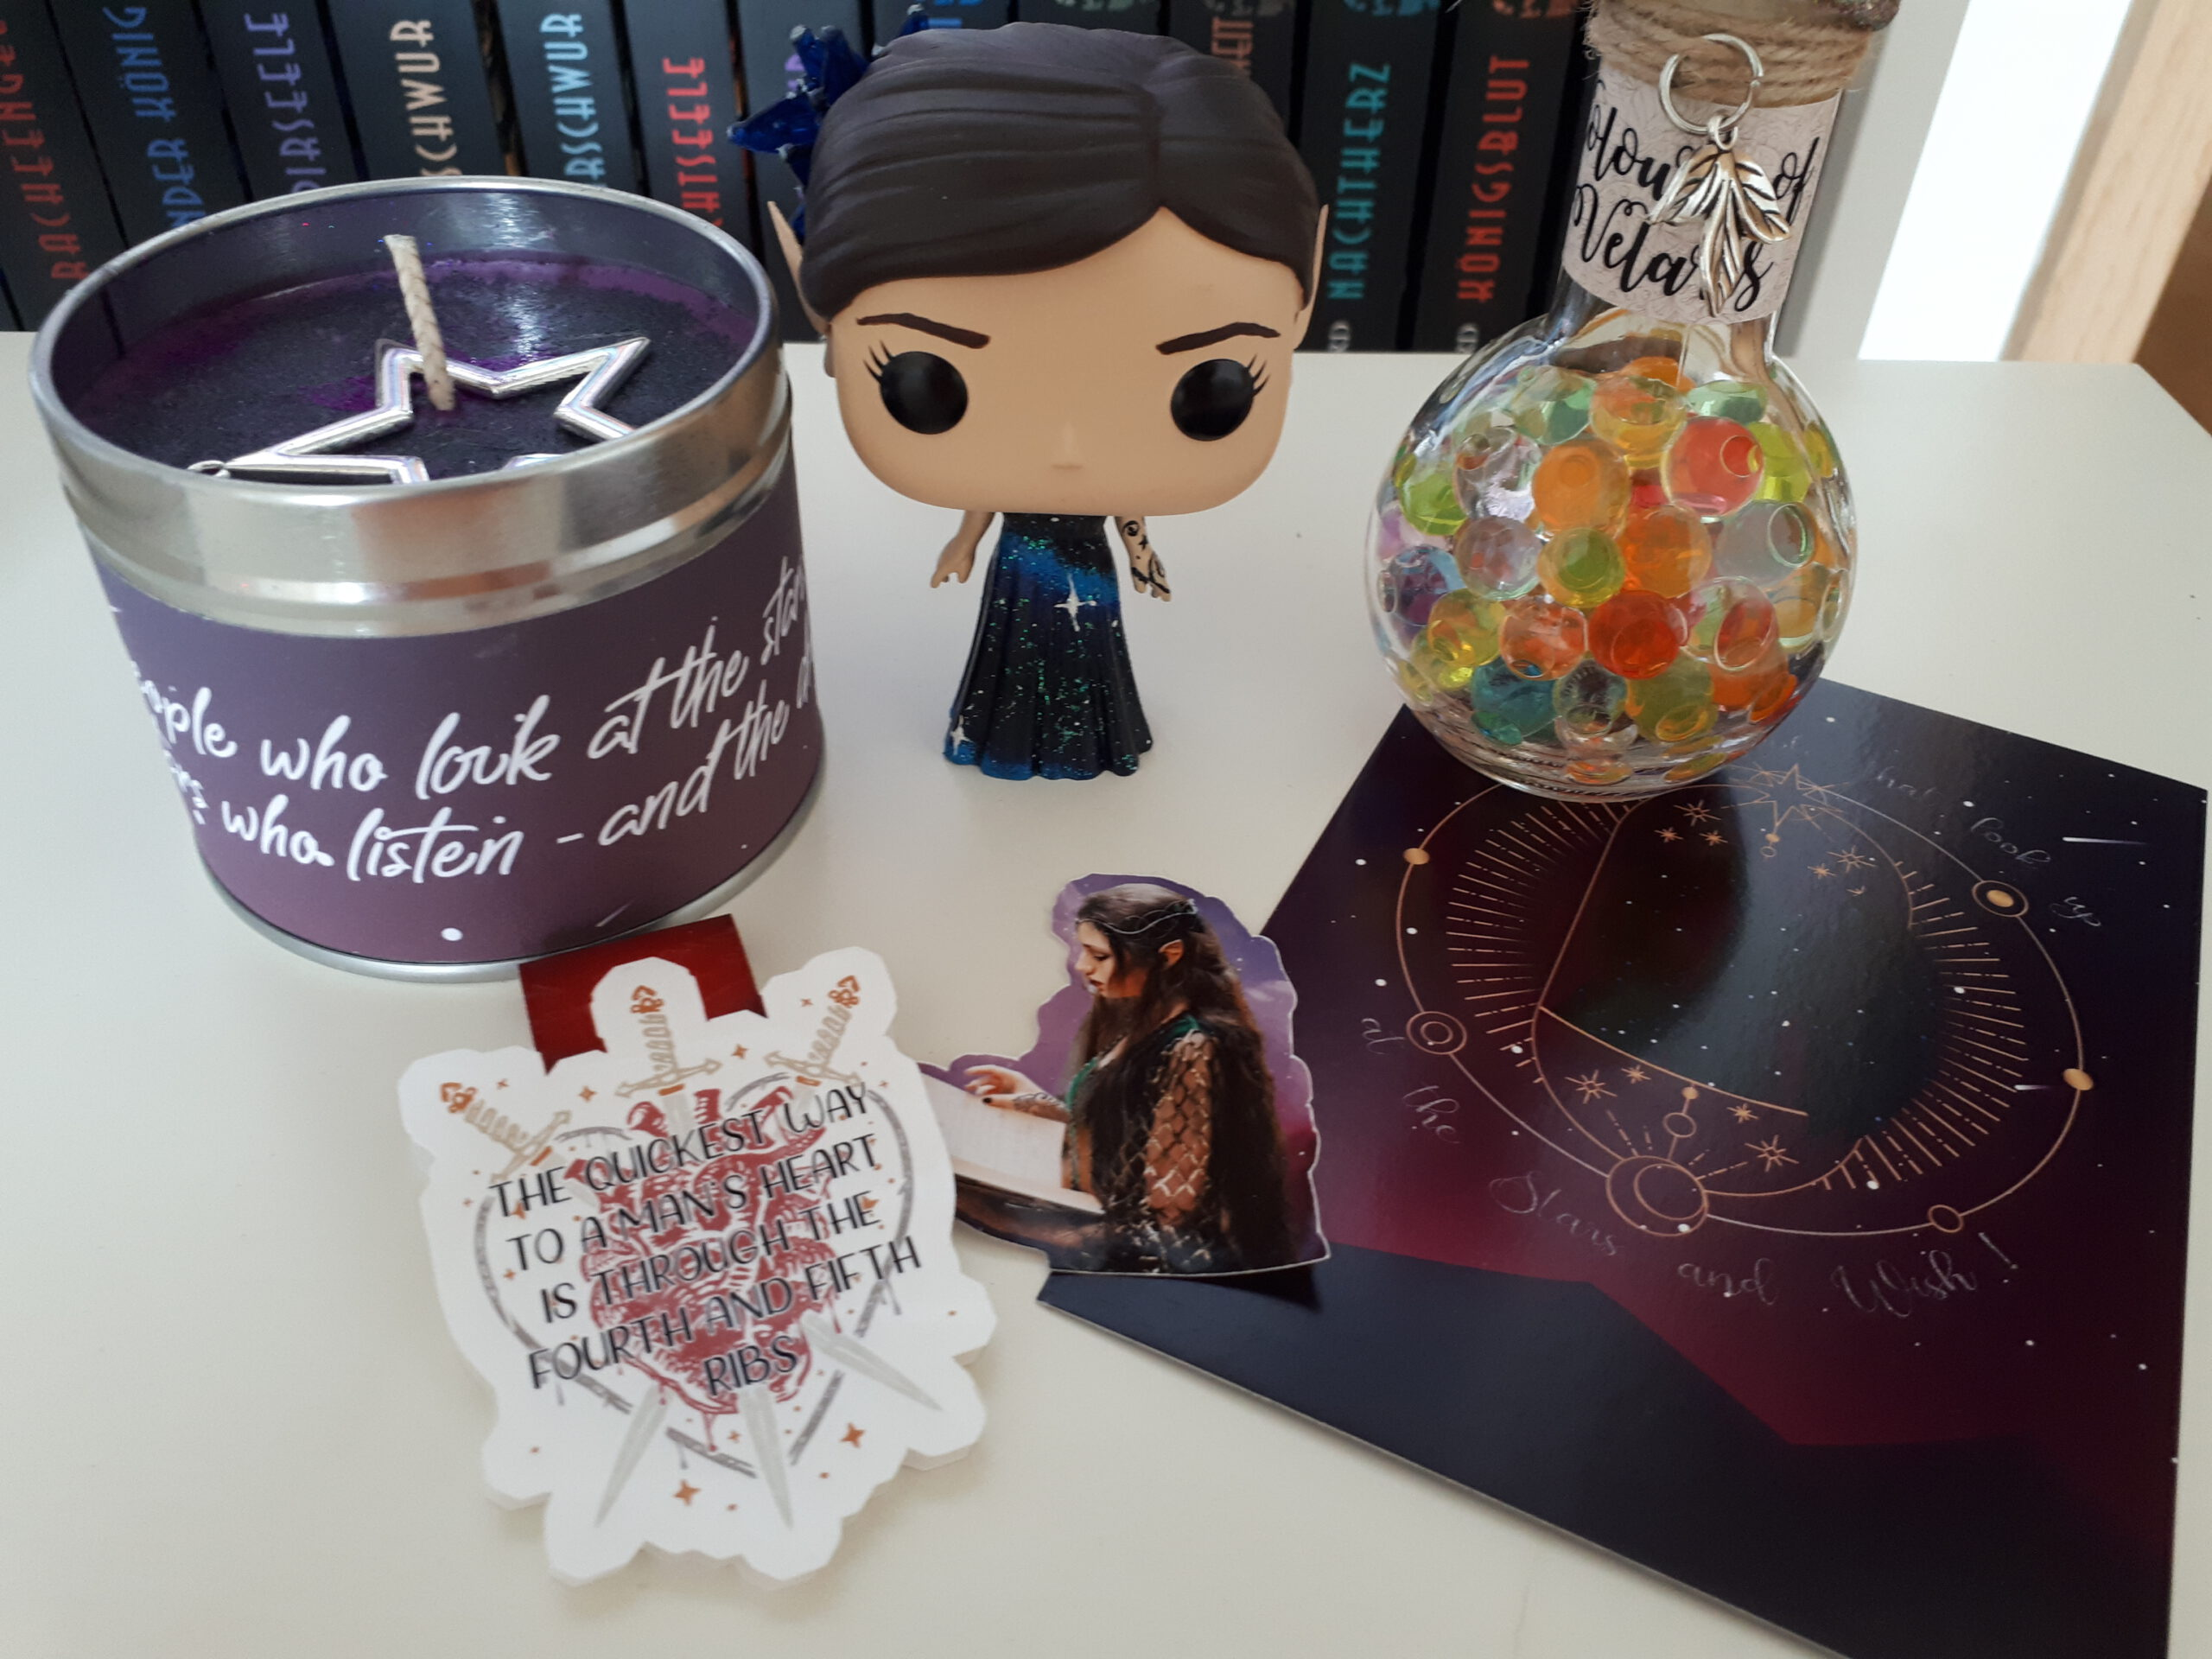 [Werbung] Unboxing ACOTAR-Box von Enchanted Books Shop